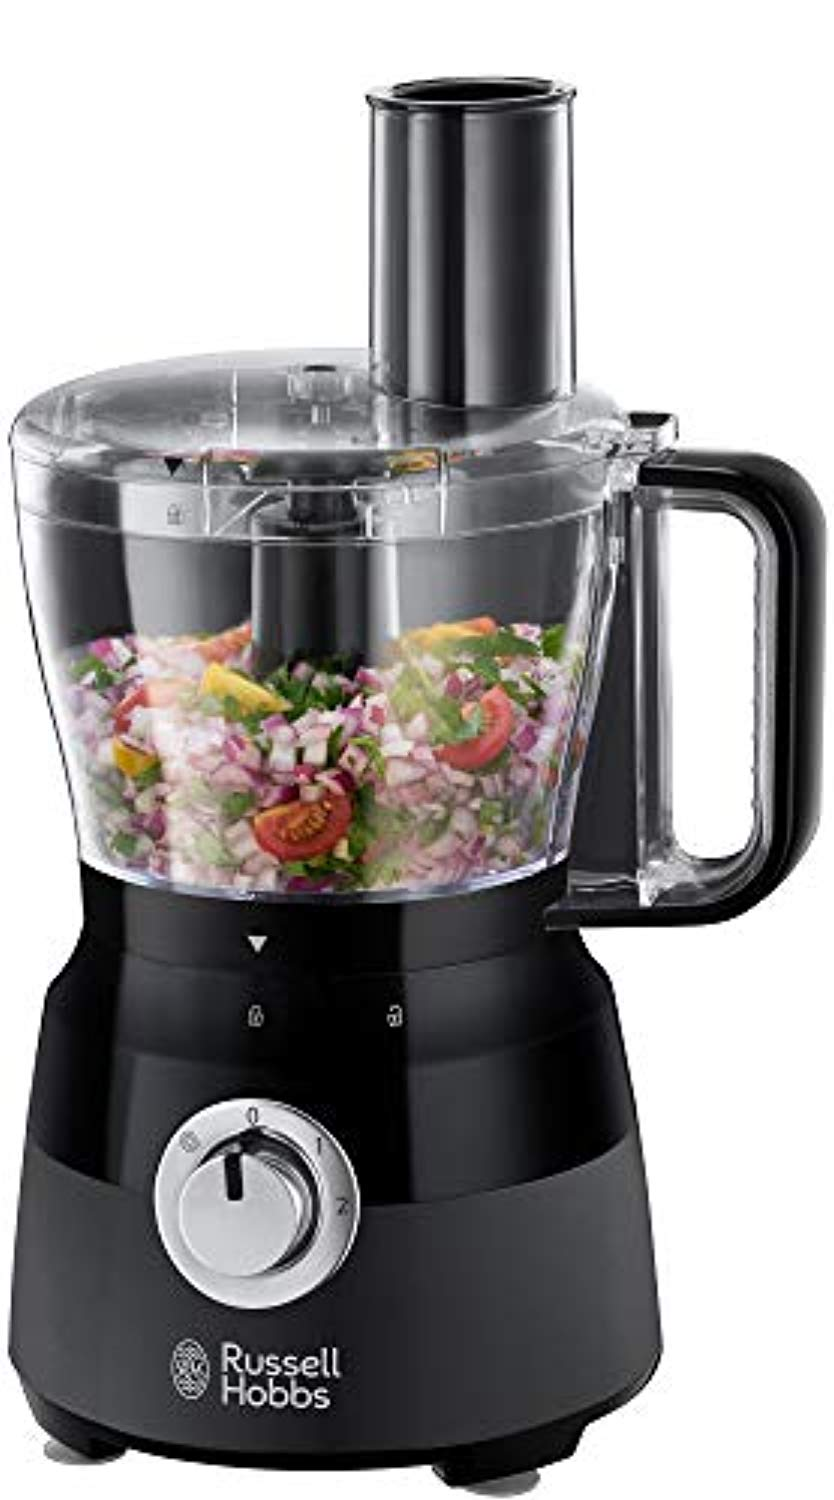 Russell Hobbs 24732 Desire Food Processor, 1.5 Litre Food Mixer with 5 Chopping, Slicing and Dough Attachments, Matte Black, 600 W - iBuy Africa